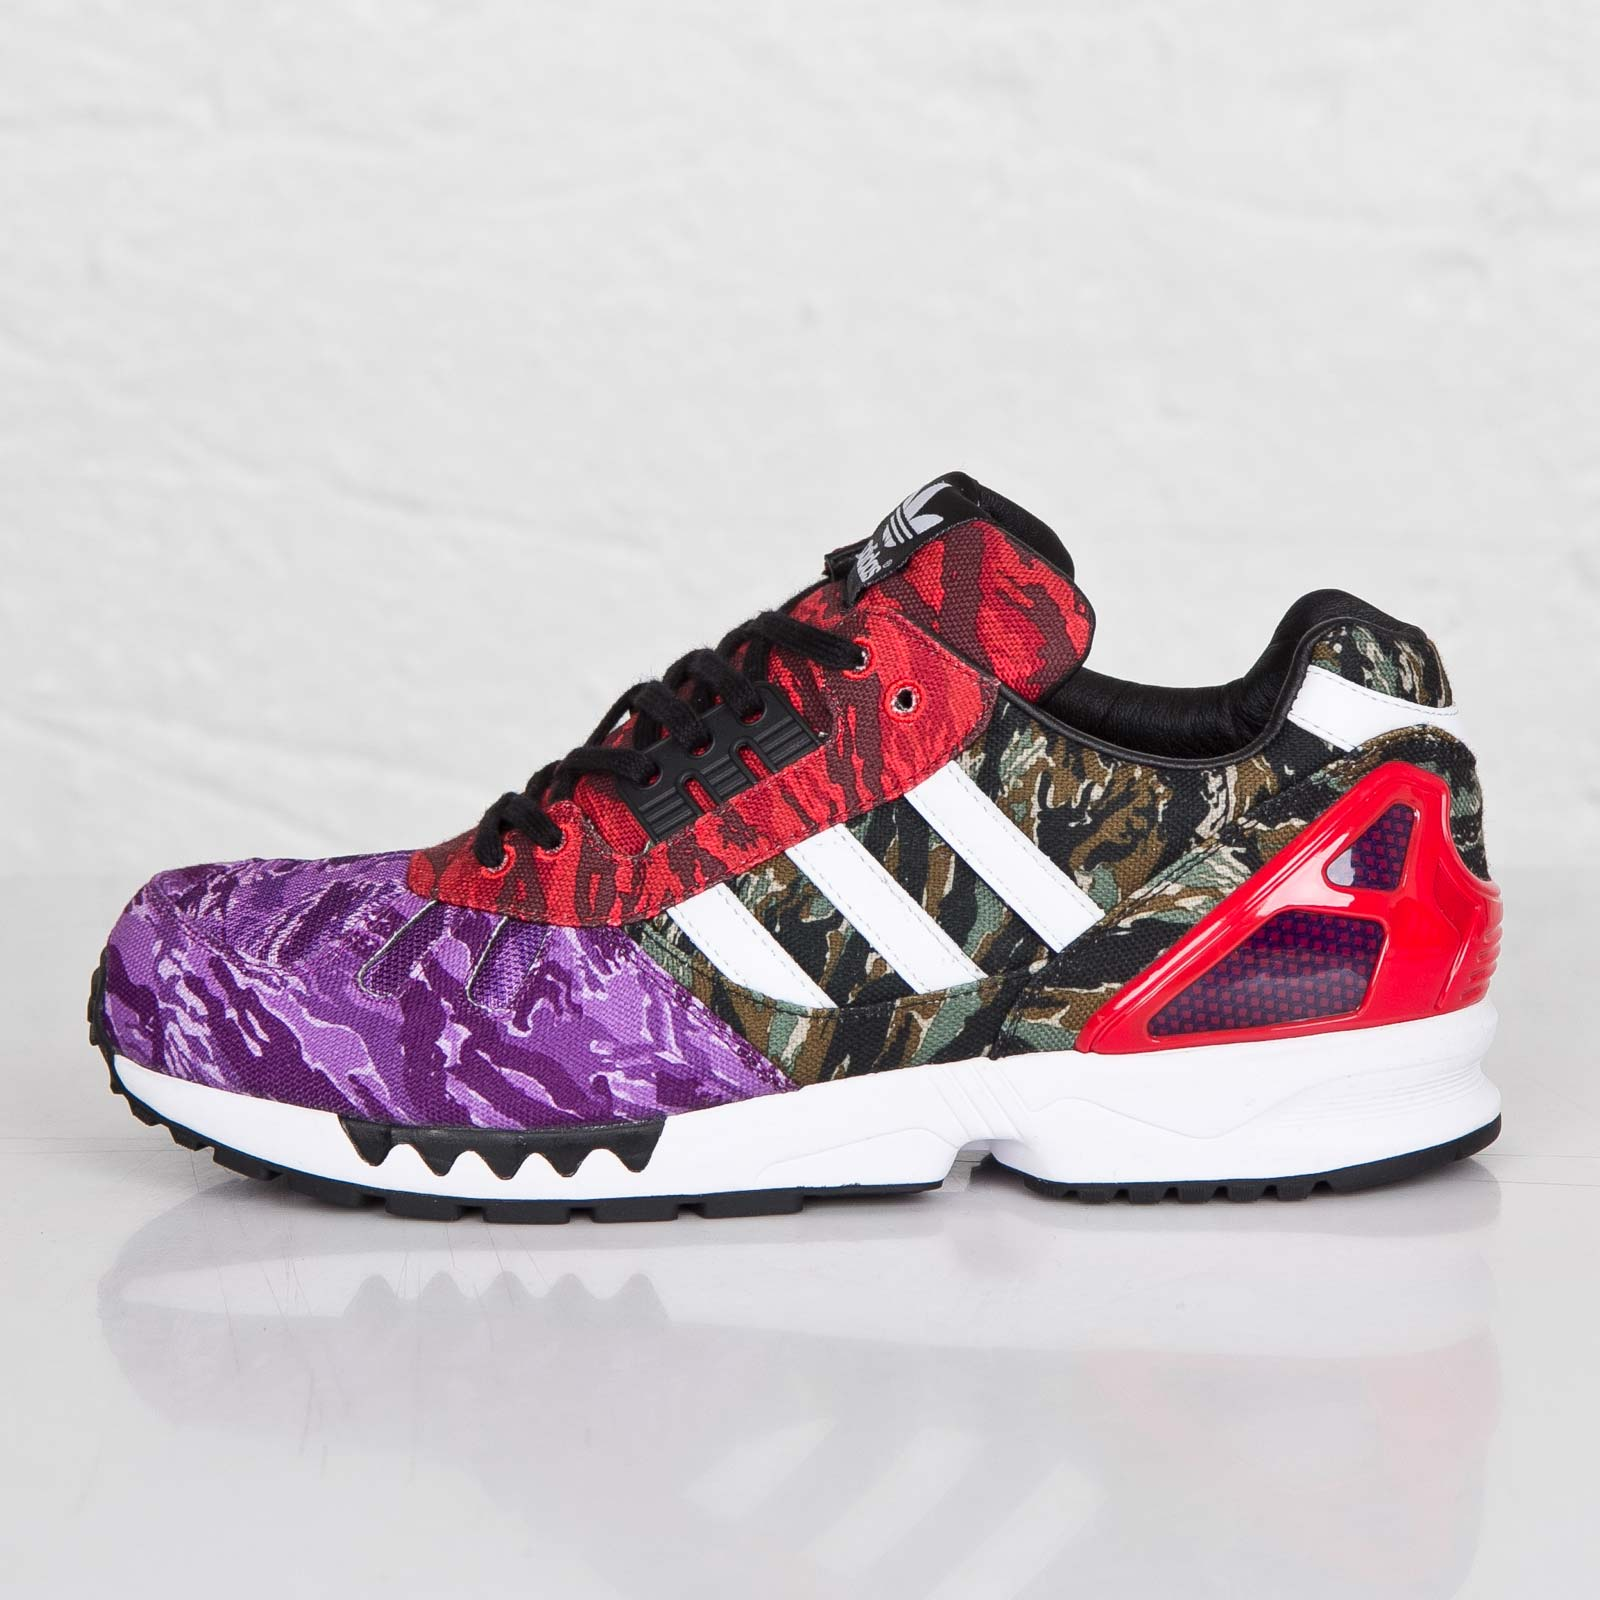 ce5b3755a adidas ZX 7000 - Blvck Scale - B34943 - Sneakersnstuff